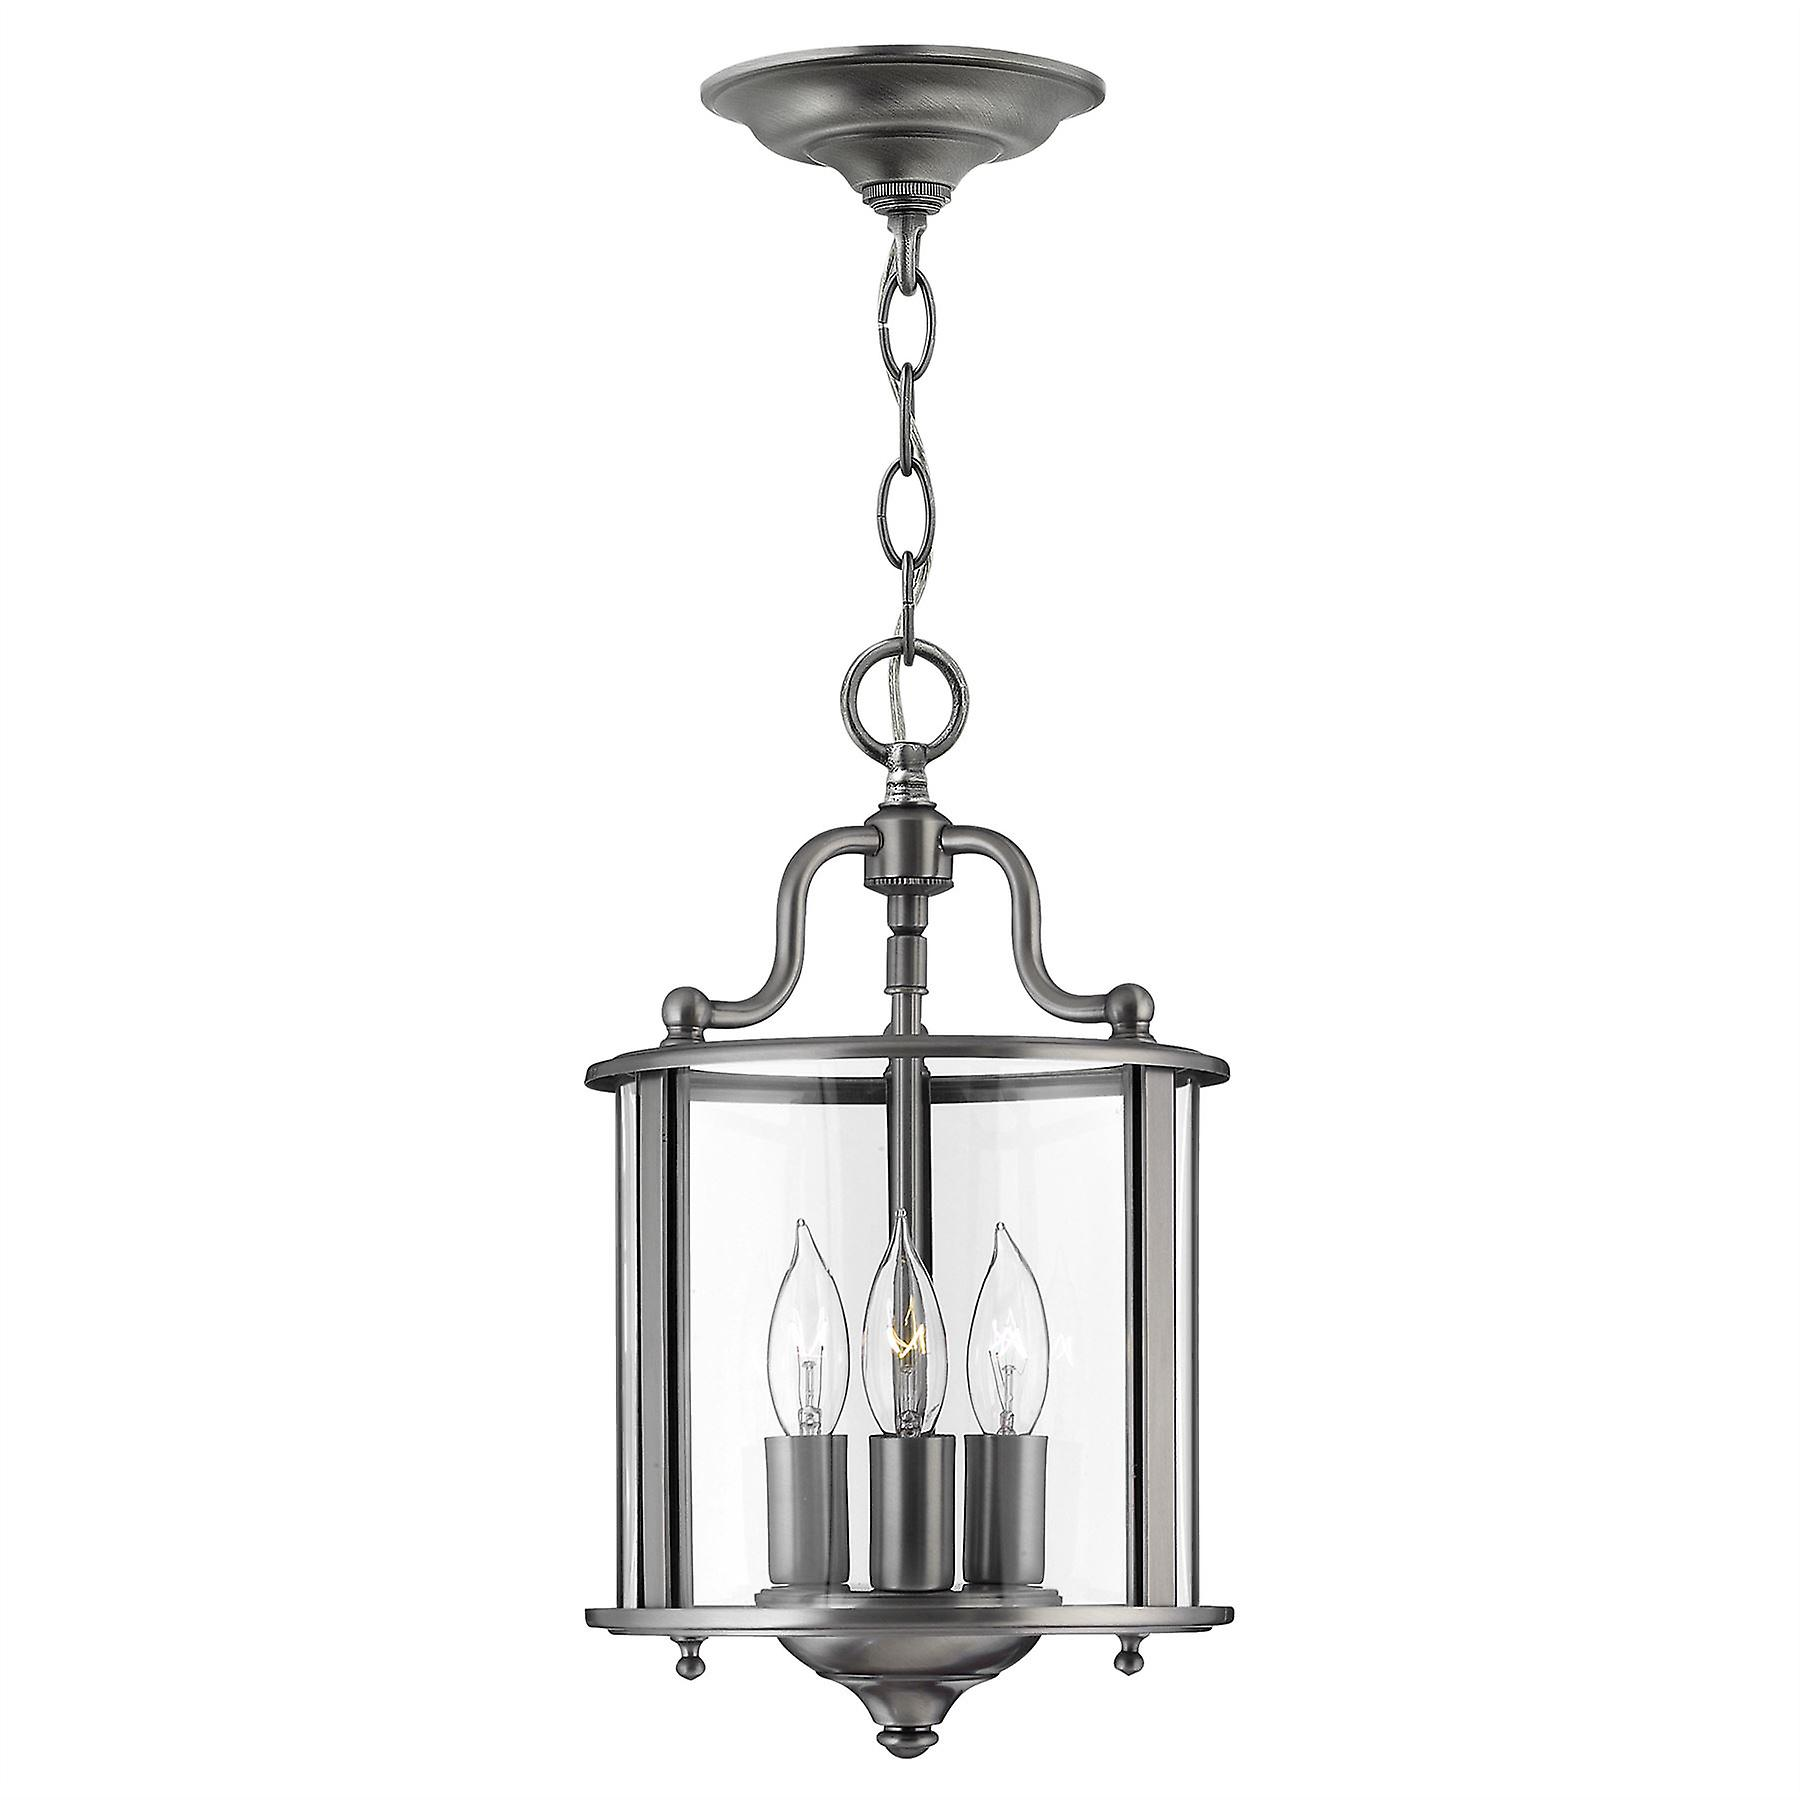 Elstead - 3 Light  Small Ceiling Pendant Pewter - HK GENTRY P S PW